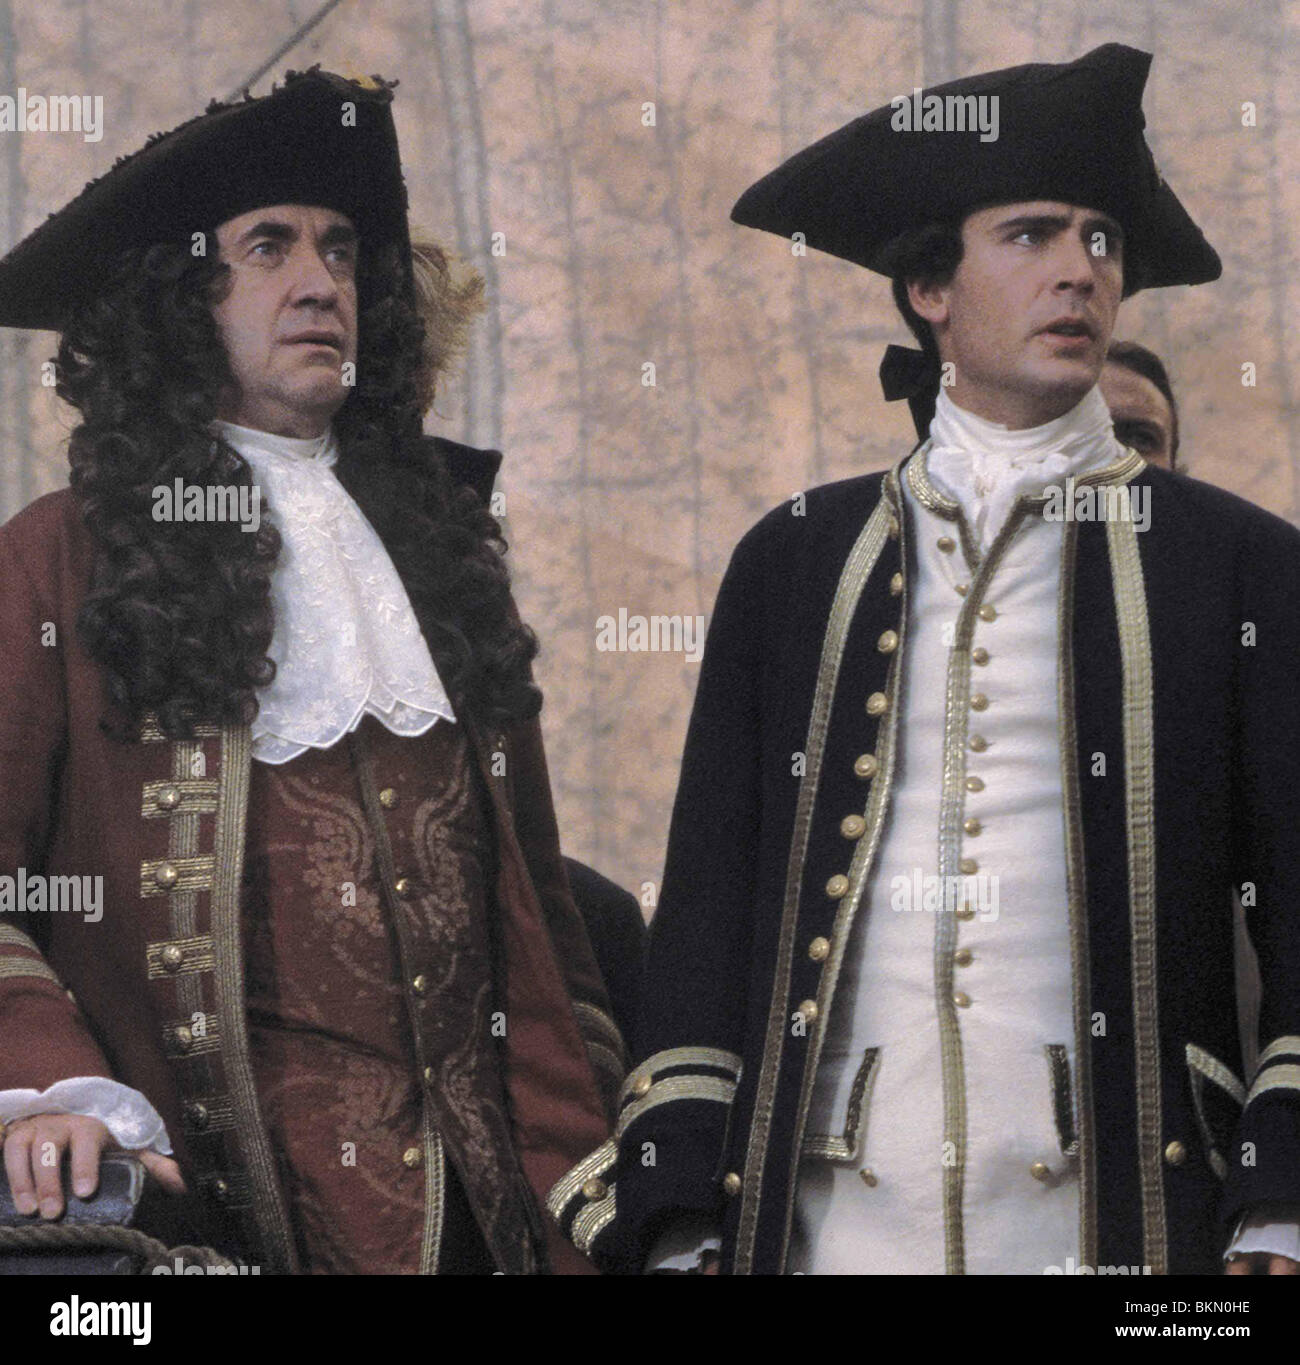 PIRATES OF THE CARIBBEAN: THE CURSE OF THE BLACK PEARL (2003) JONATHAN PRYCE, JACK DAVENPORT CREDIT DISNEY PIRC - Stock Image